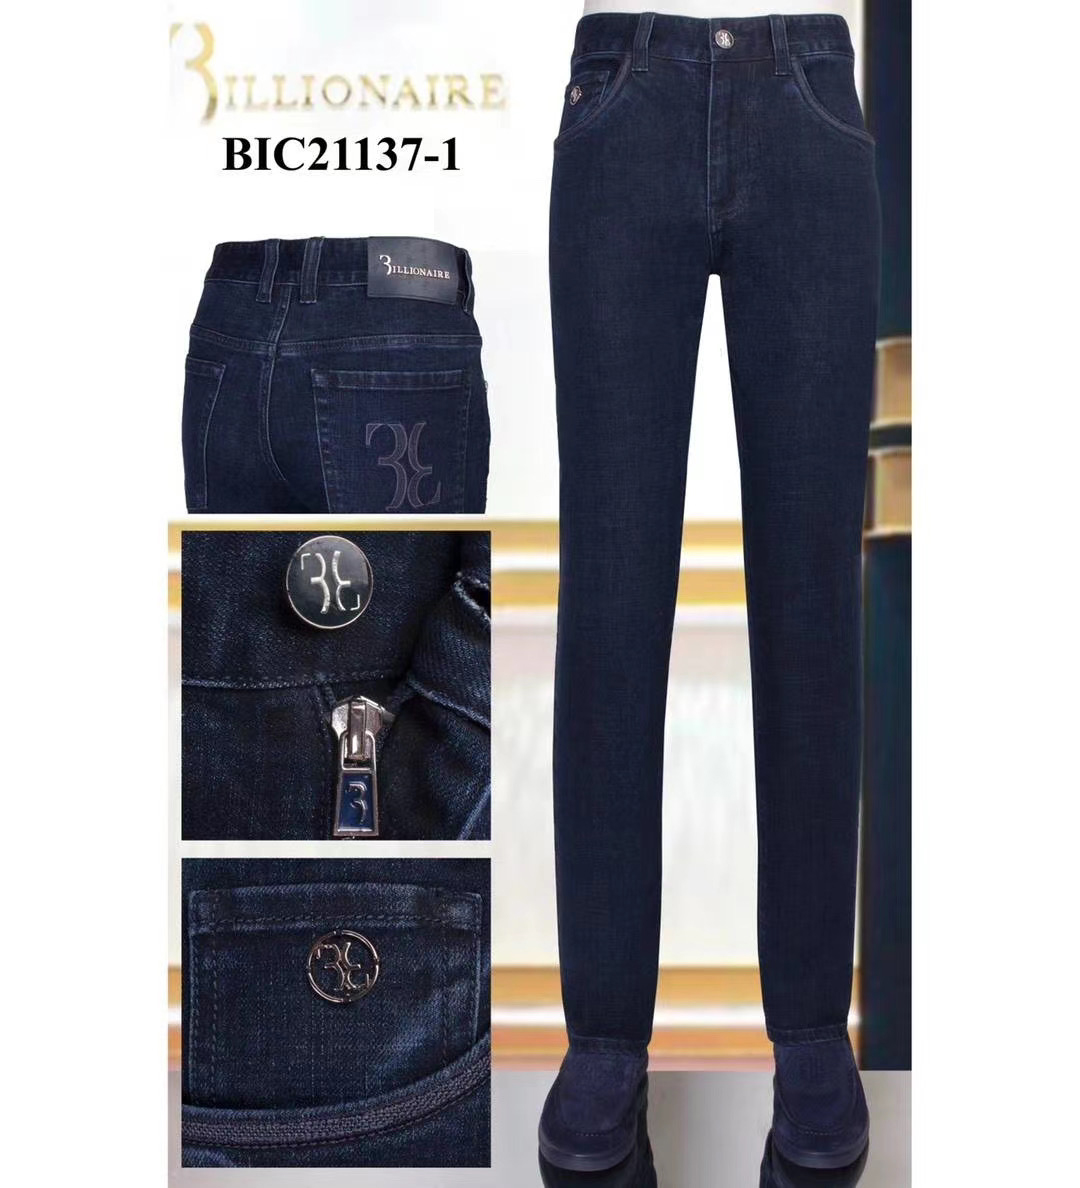 BILLIONAIRE Jeans men 2020 autumn and winter thick fabric Fashion embroidery pattern solid color high fabric gentleman